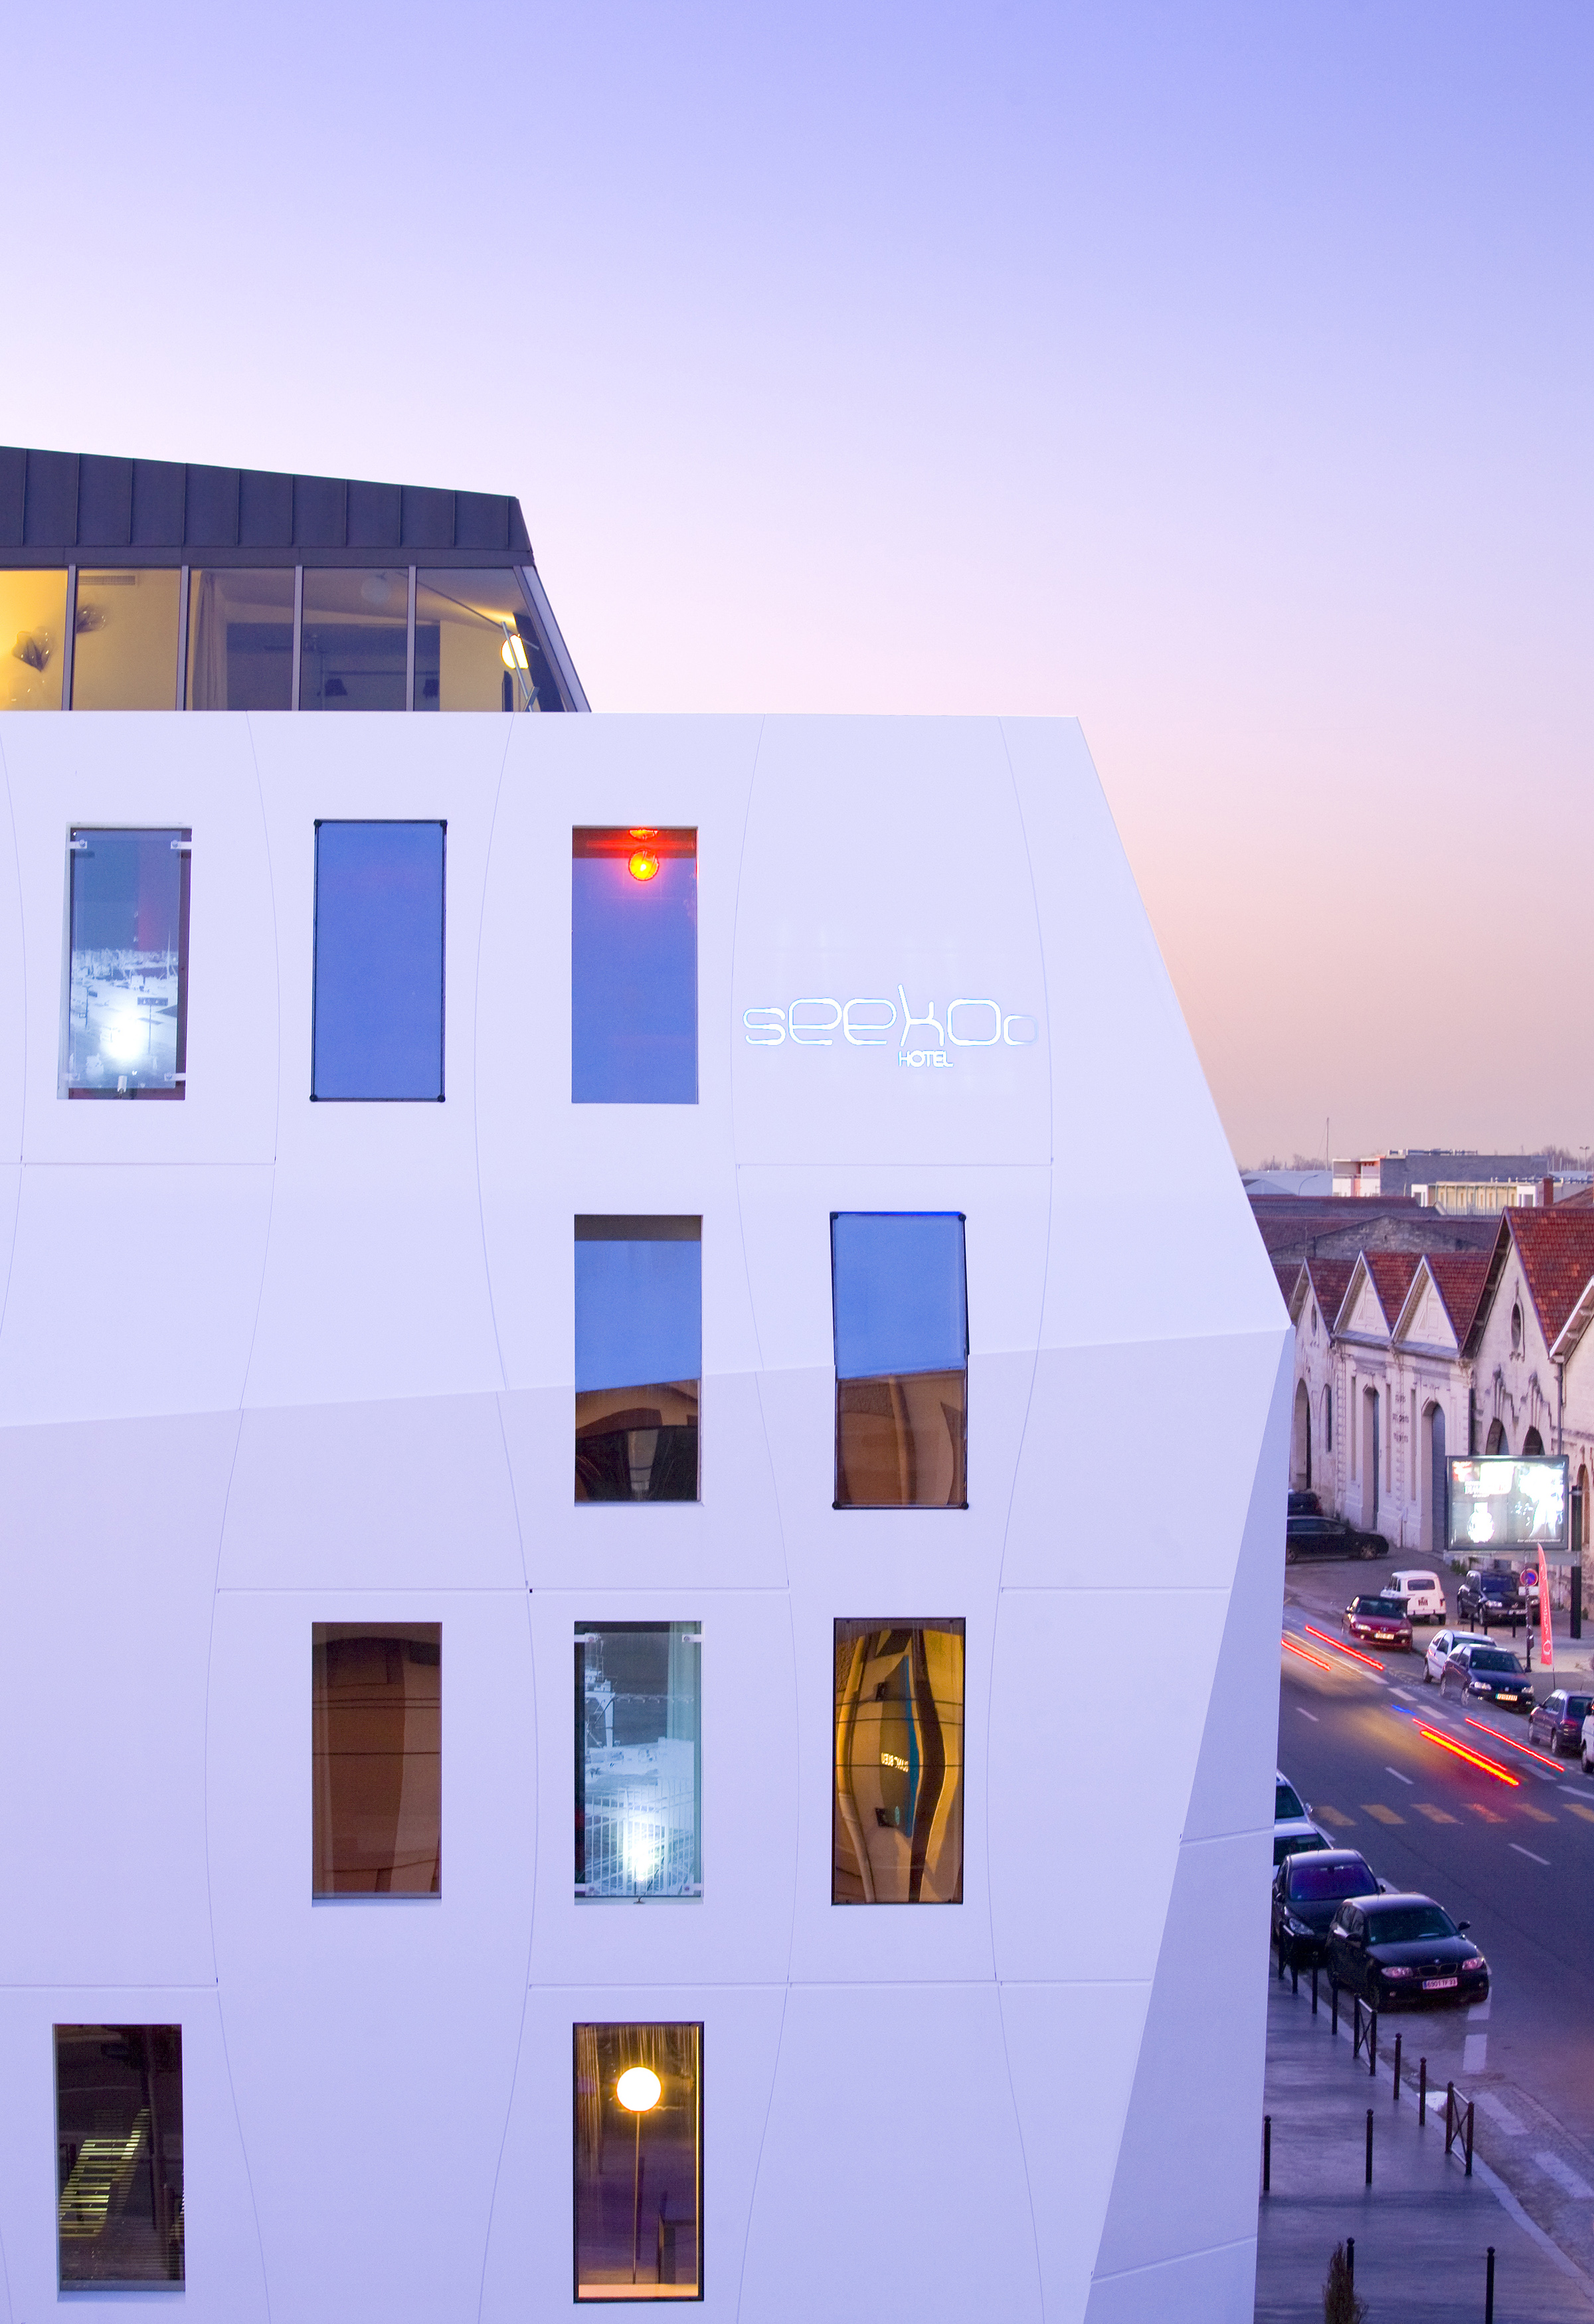 Dupont introduces new corian exterior cladding for modern memorable fa ades - Hotel seekoo bordeaux ...